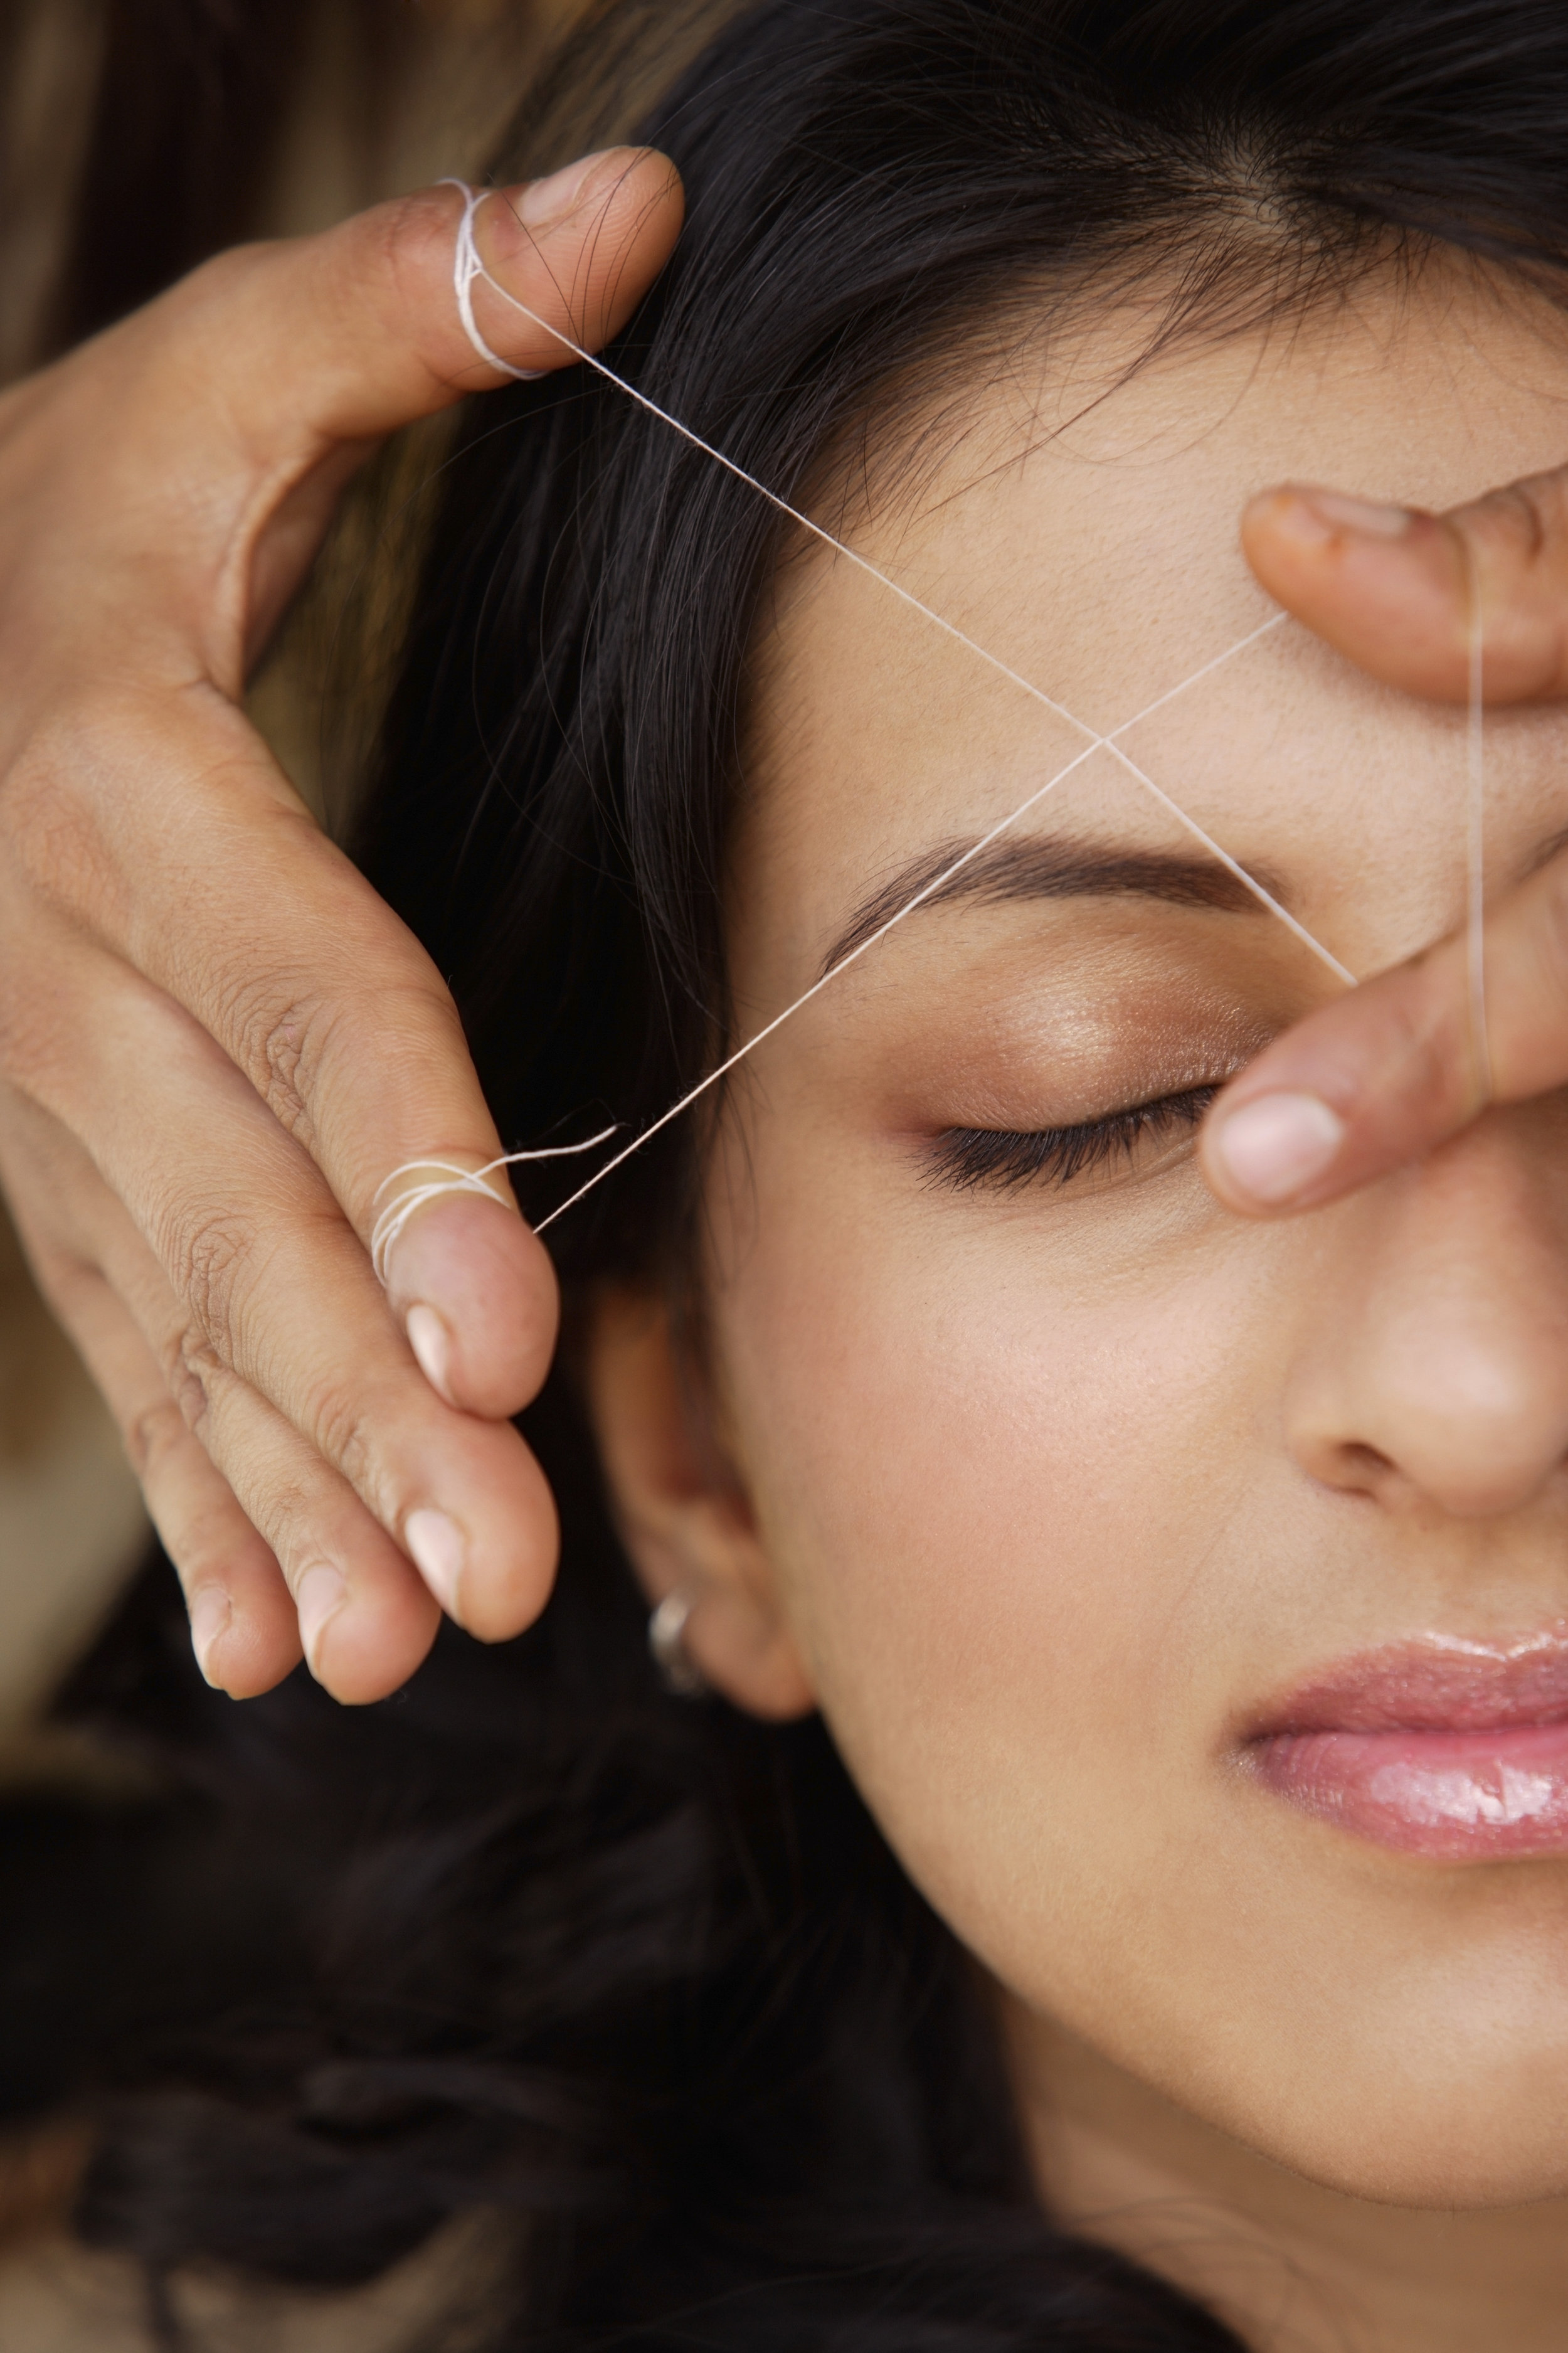 eyebrow threading3.jpg